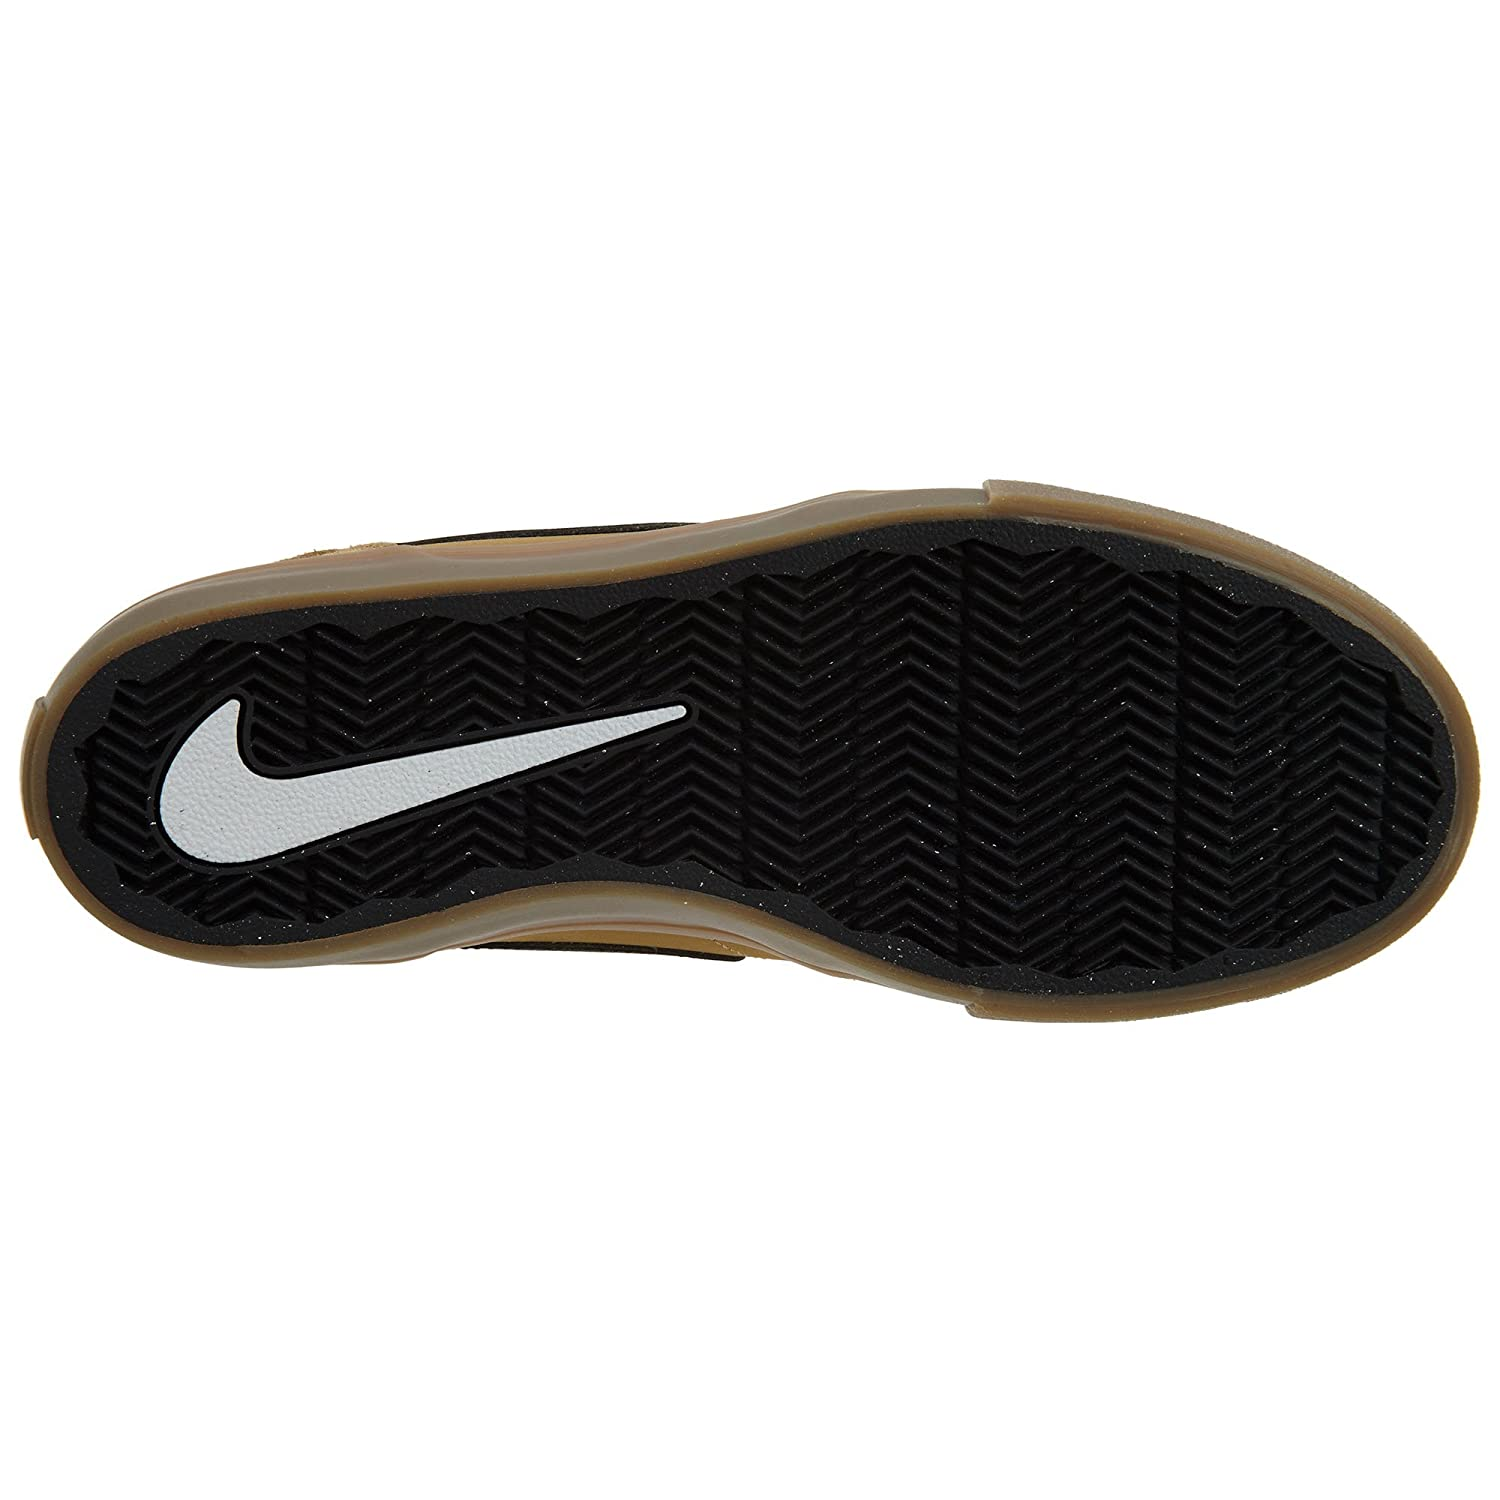 NIKE Men's Sb Portmore Ii Solar Ankle-High Canvas Skateboarding Shoe B07DVTNB6T 6.5 D(M) US|Golden Beige/Black